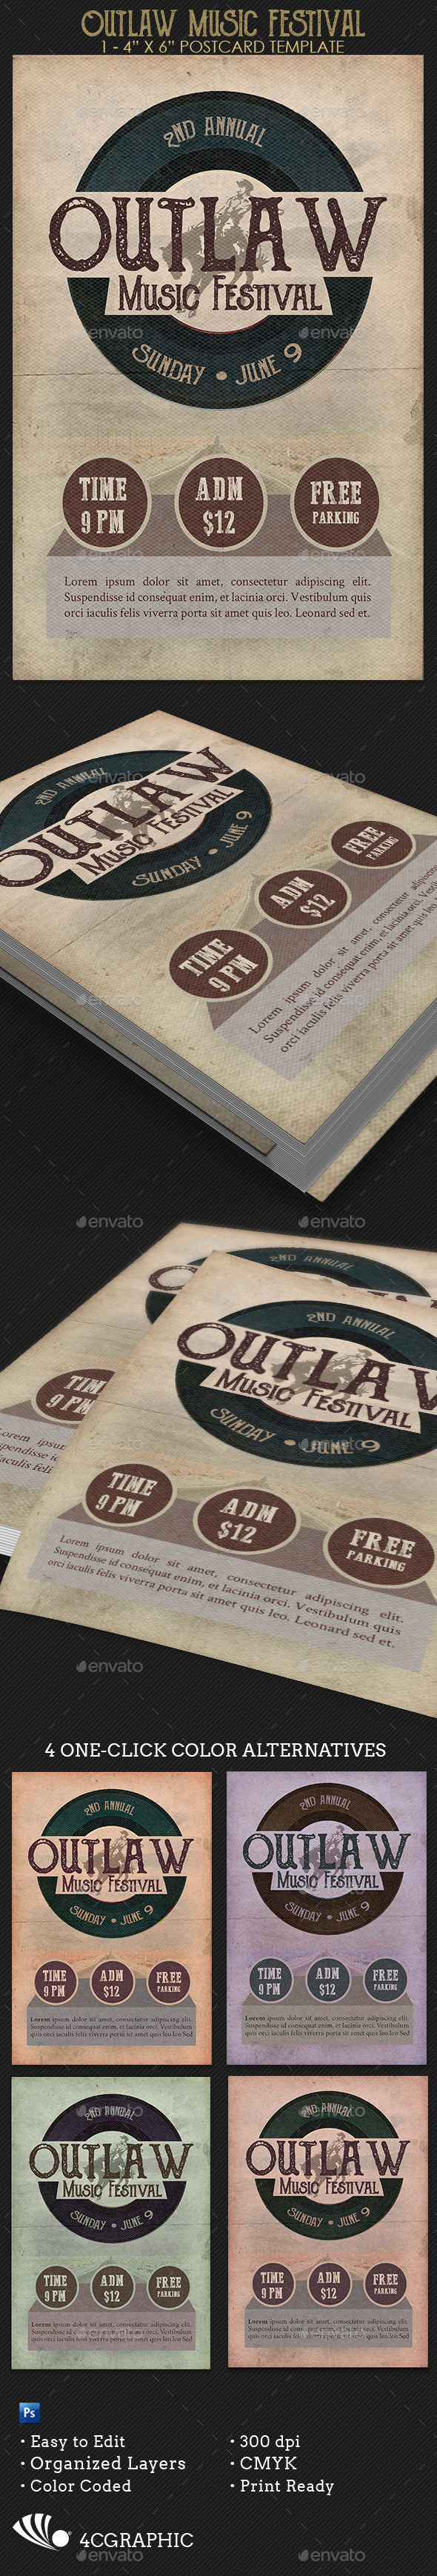 Outlaw Music Festival Flyer Template - Concerts Events